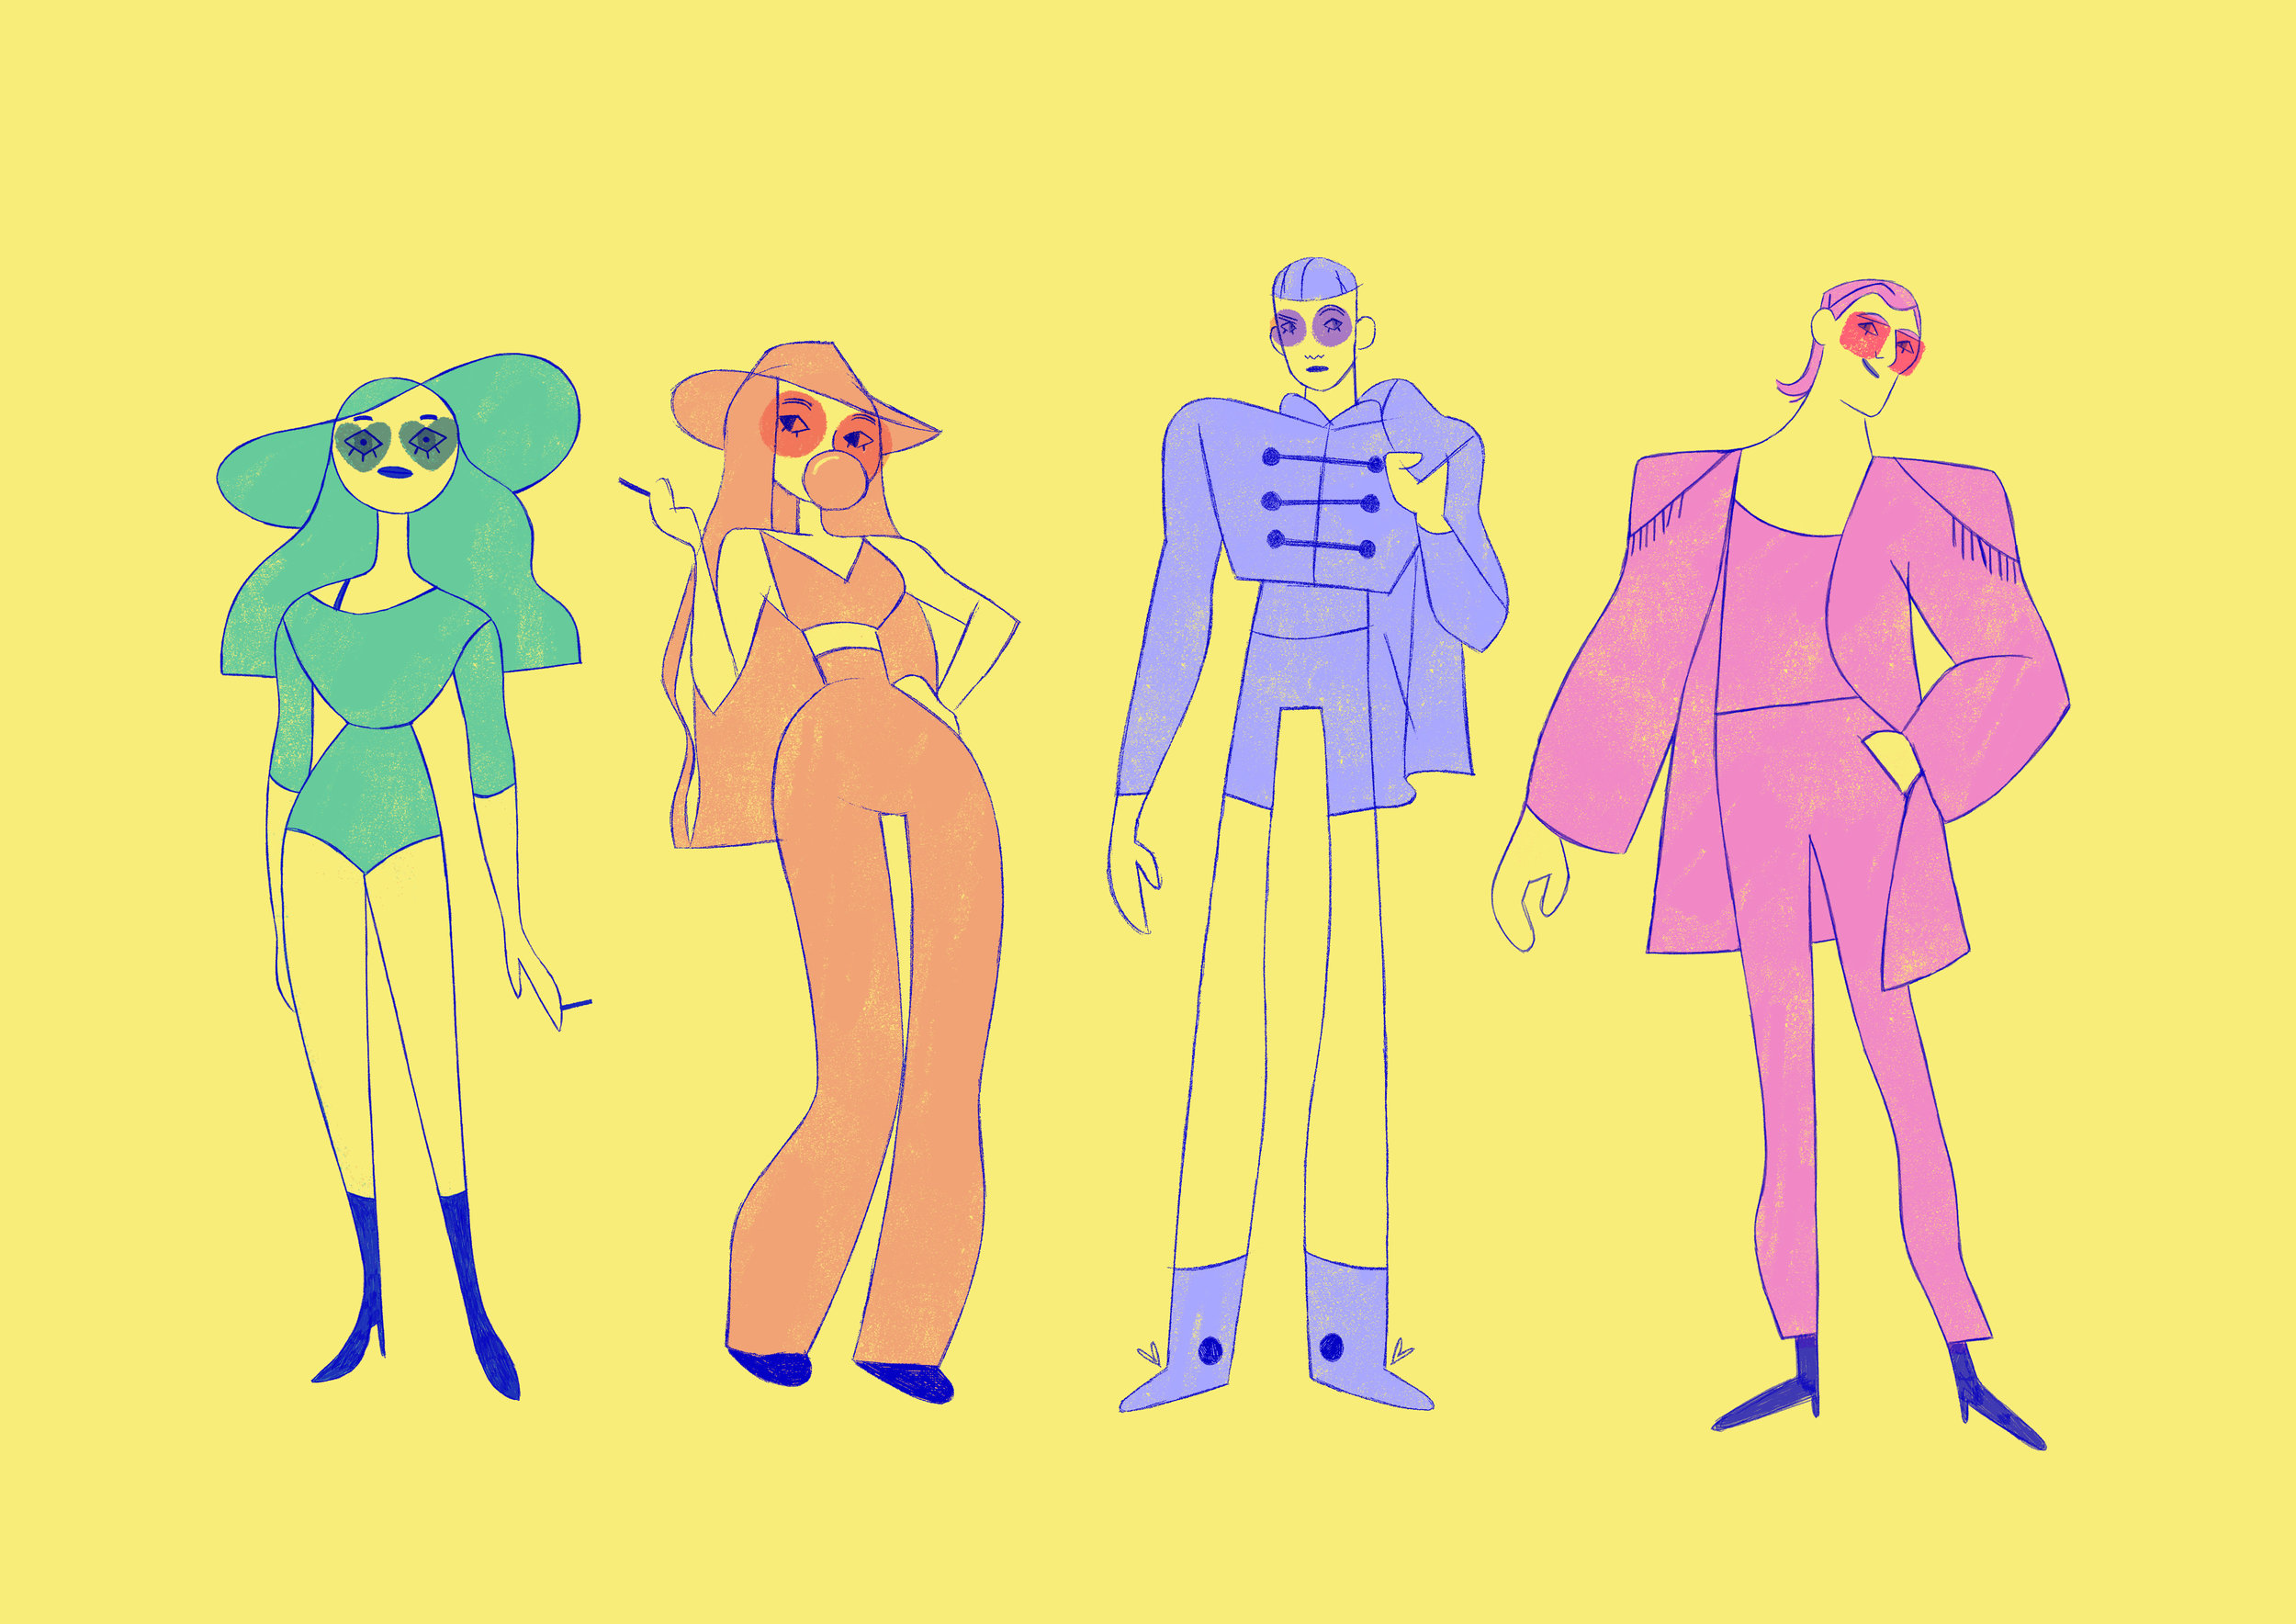 tom-goyon-character-design-queer-80s-band